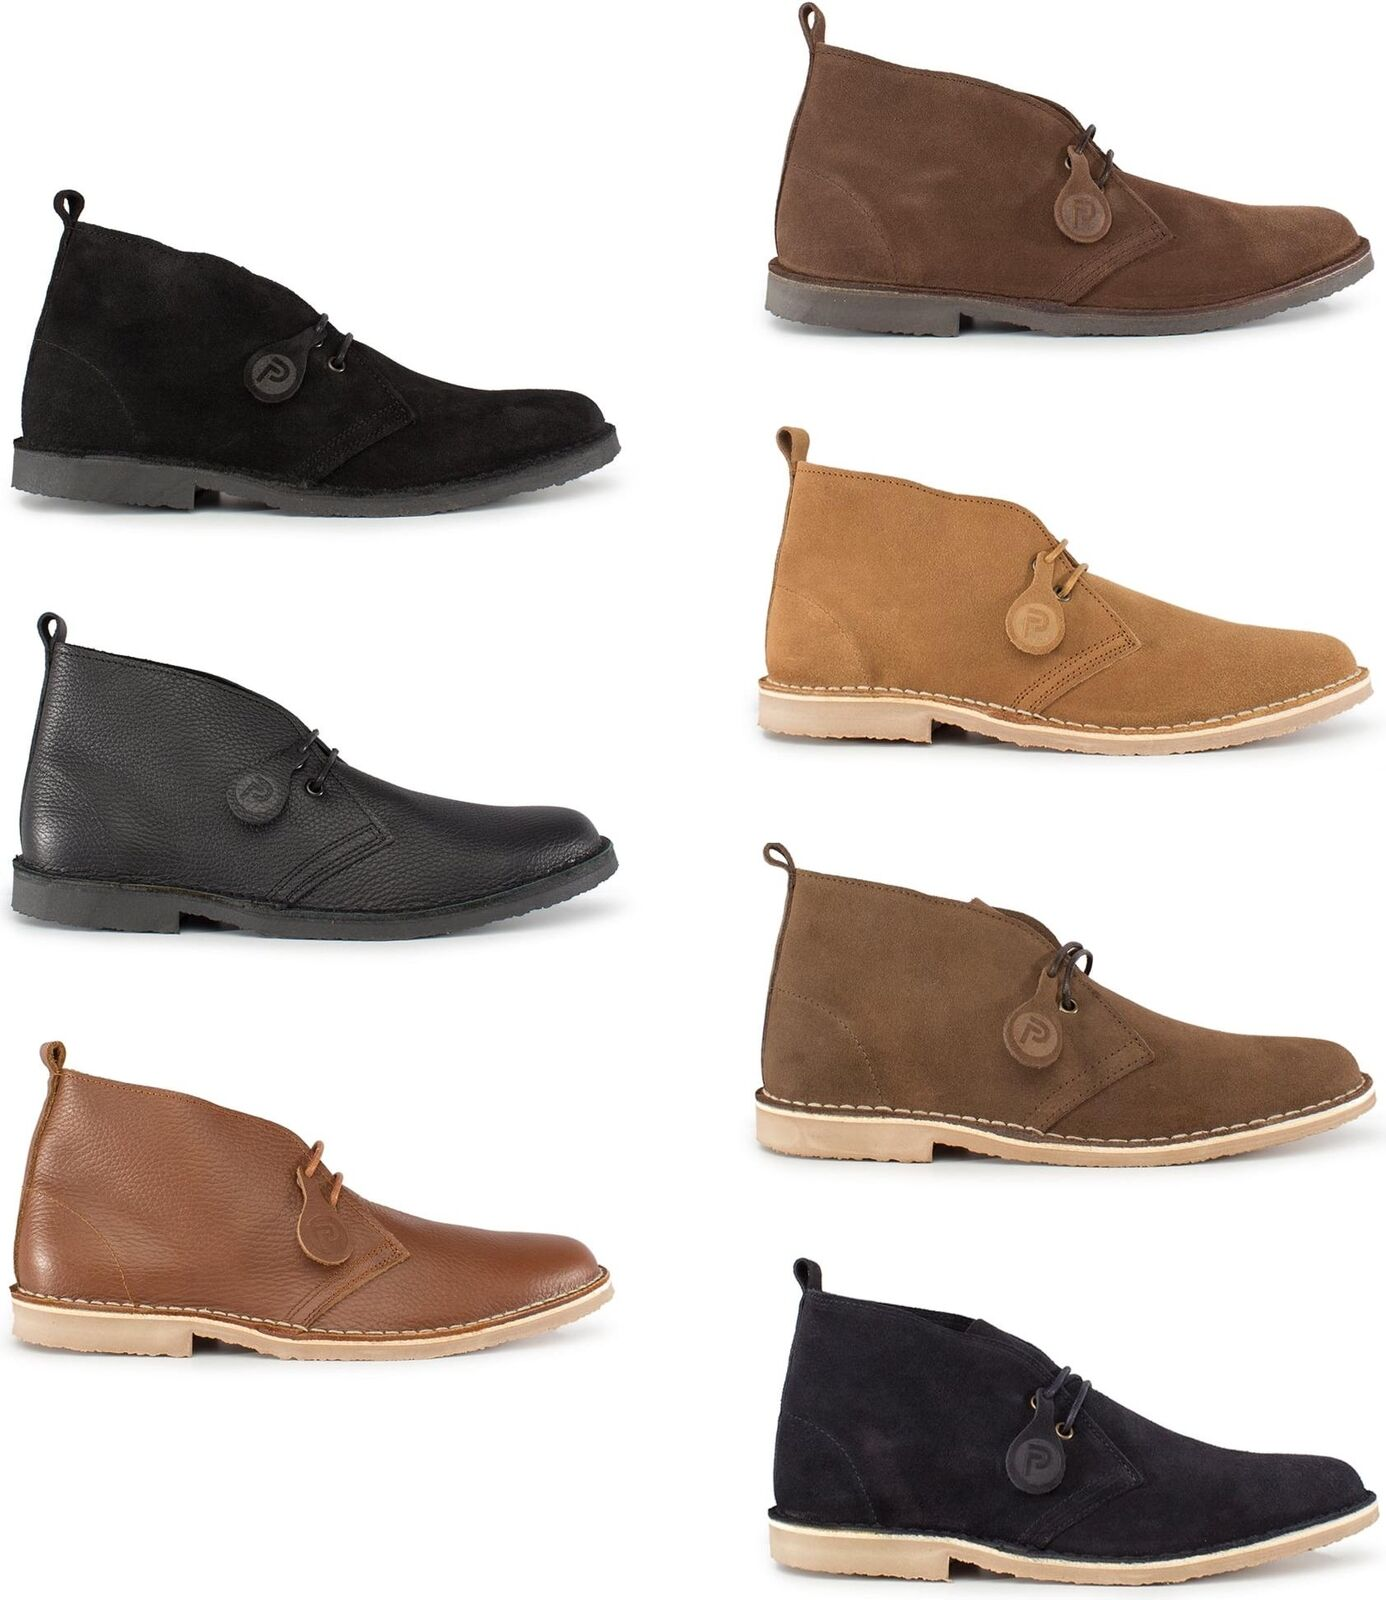 Popps™ ORIGINAL Unisex Mens Womens Suede Leather Casual Lace Up Desert Boots